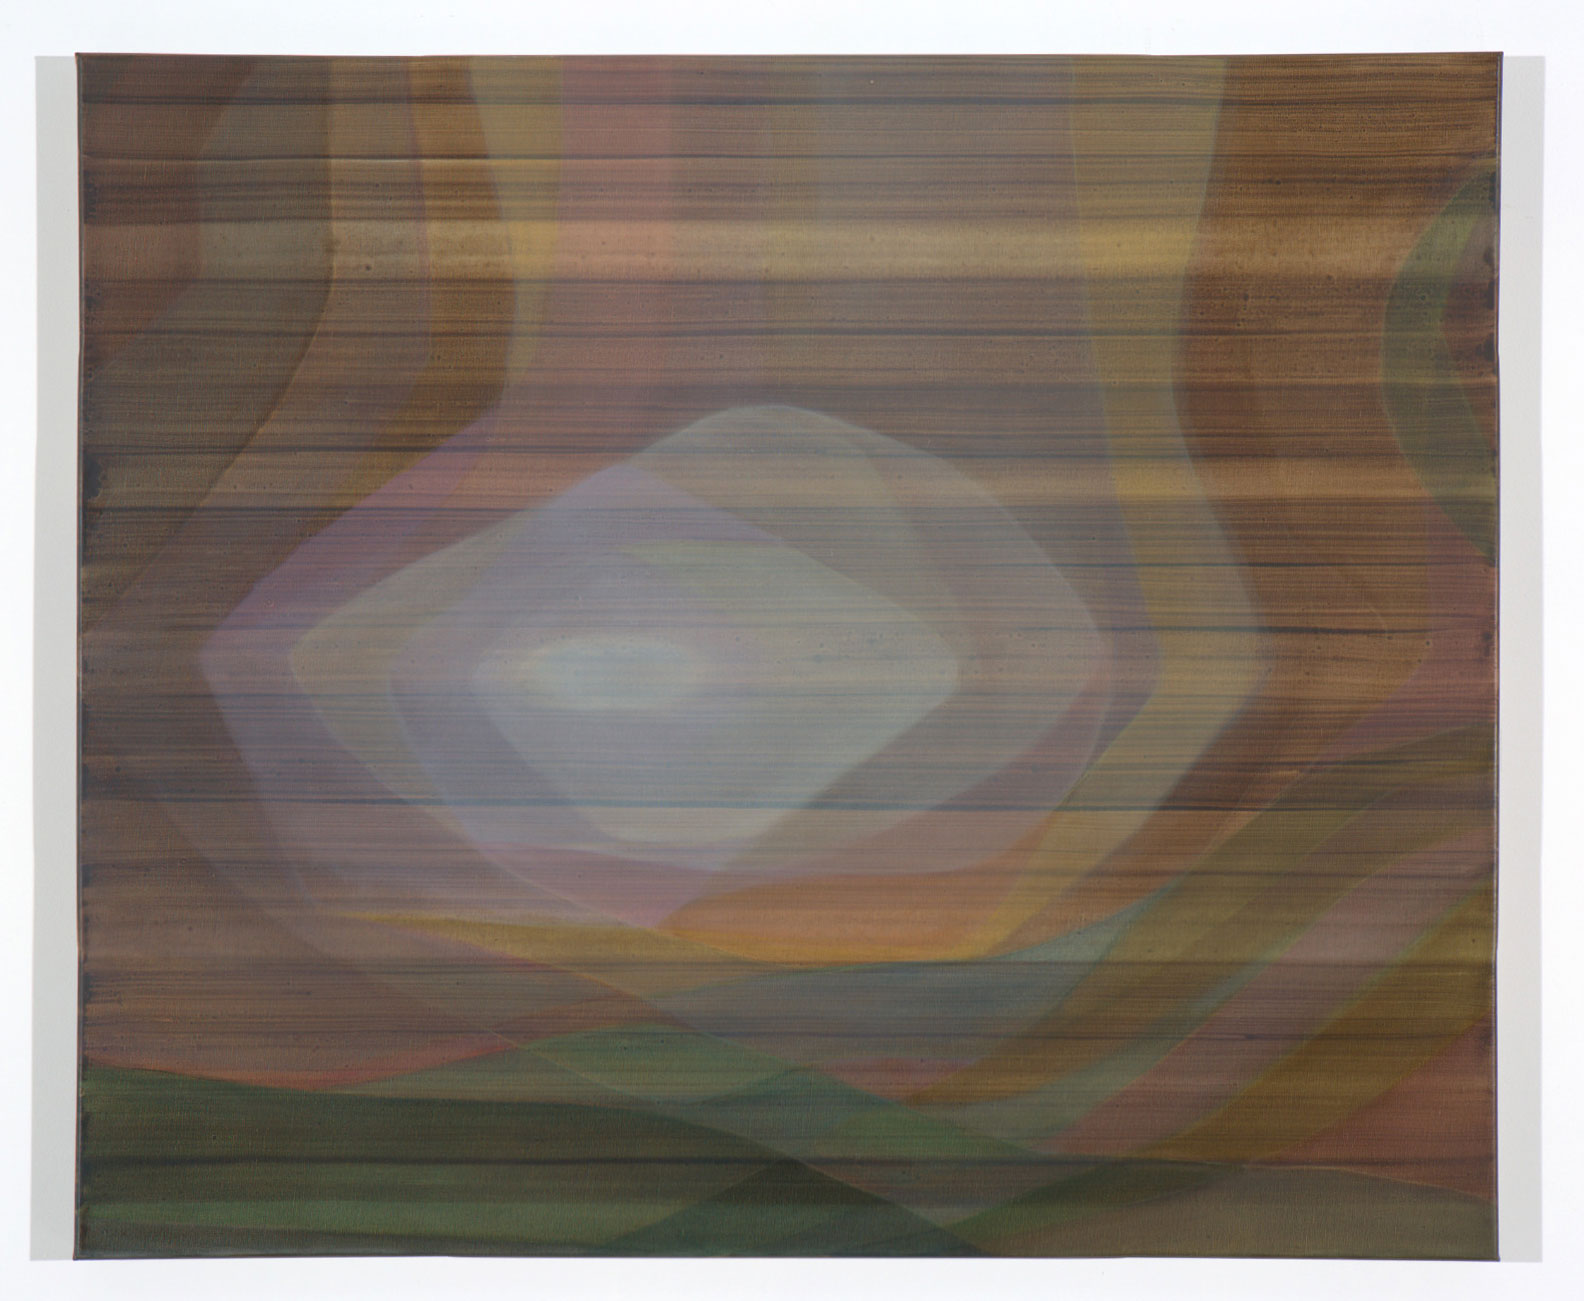 JOHN YOUNG   None Living Knows #3  2017 oil on canvas 86.5 x 102.5 cm